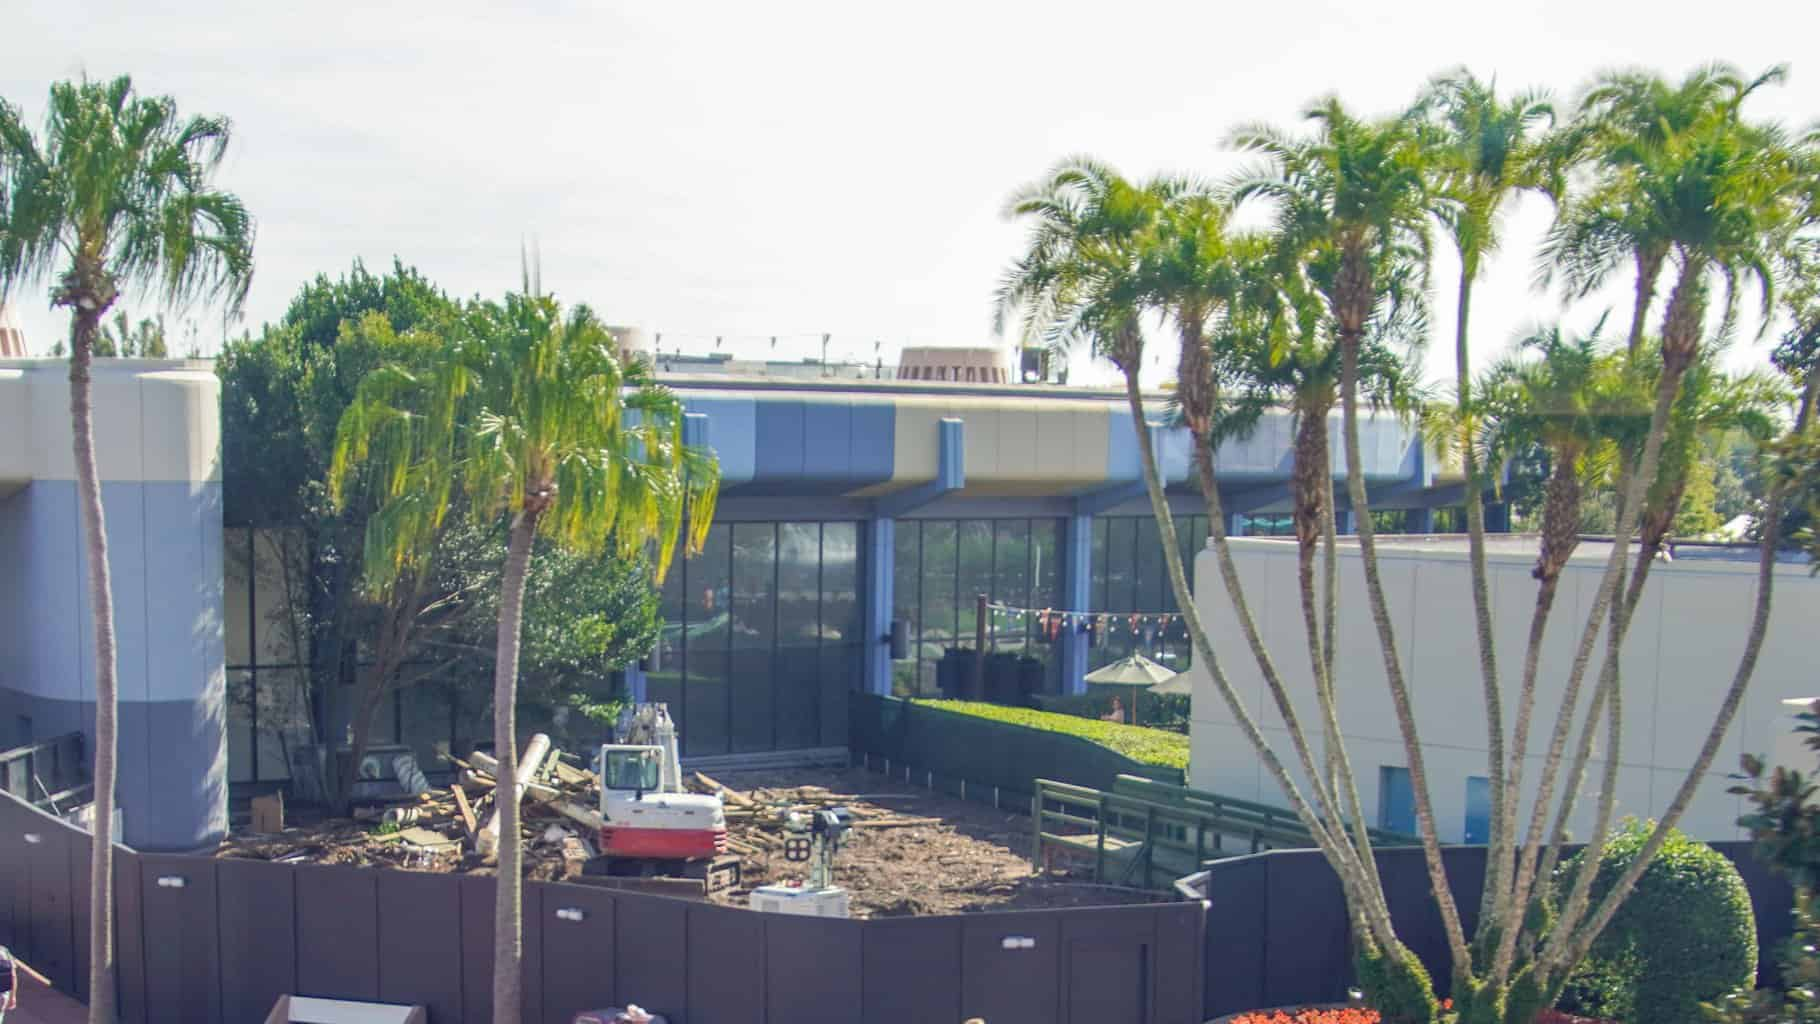 Innoventions West Demolition Epcot Construction Updates November 2019